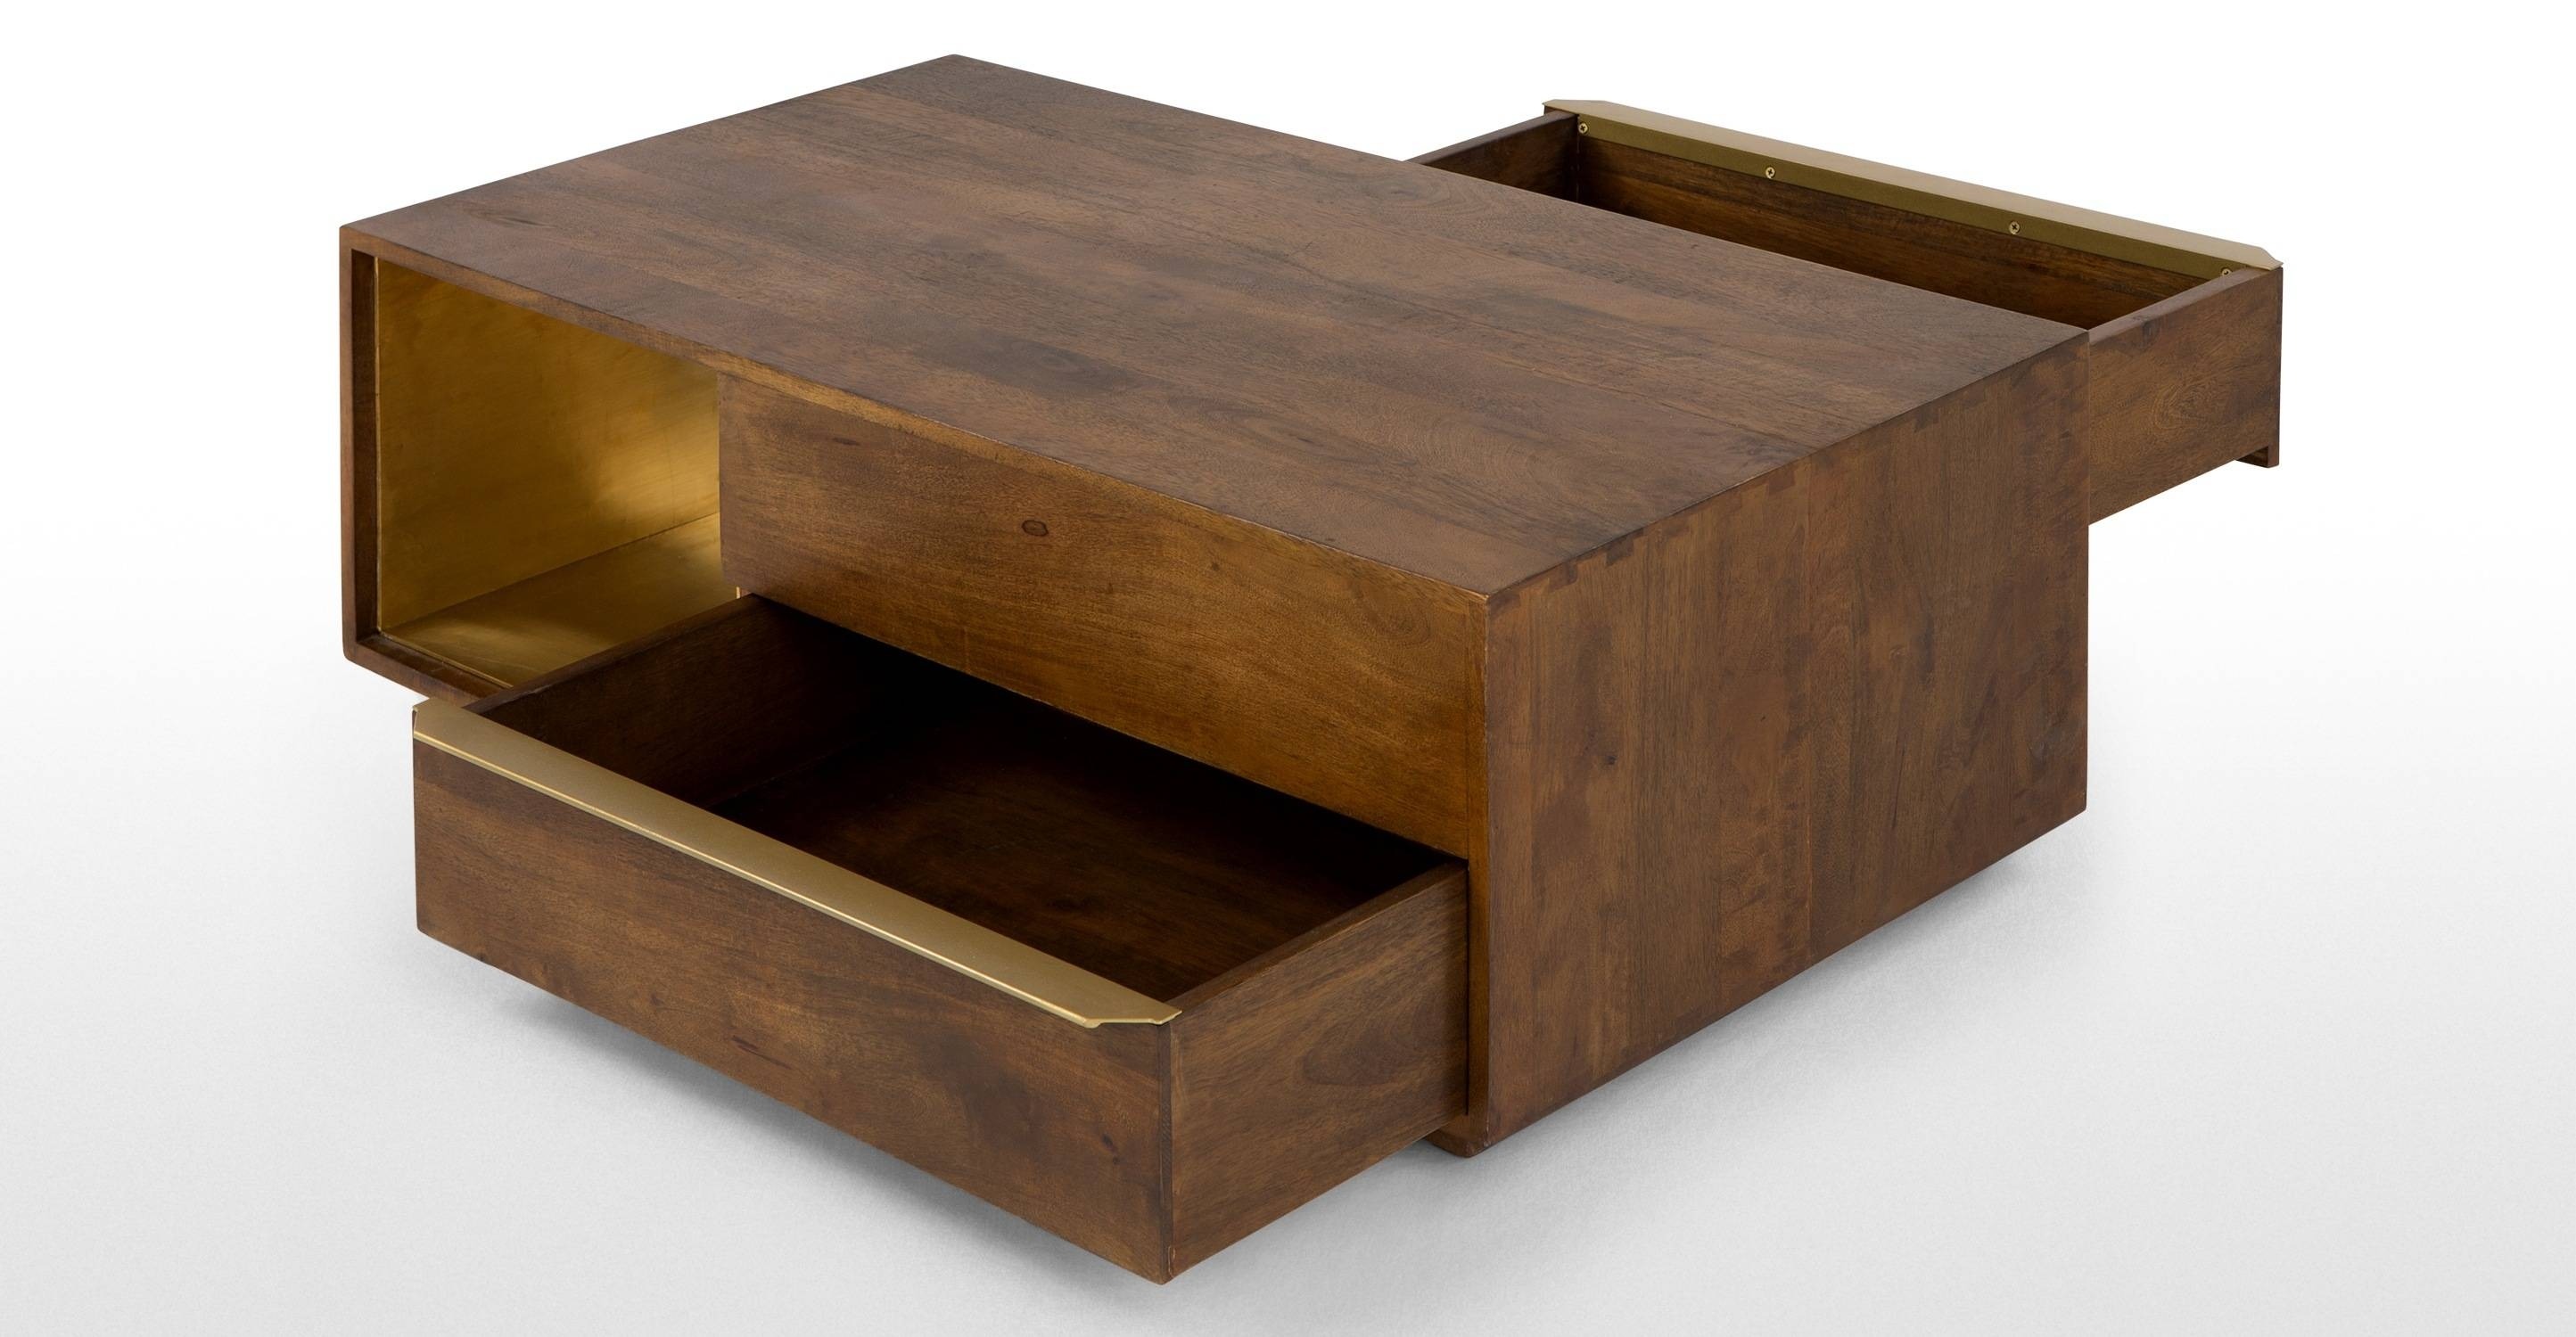 Anderson Coffee Table, Acacia Wood | Made intended for Mango Coffee Tables (Image 2 of 30)